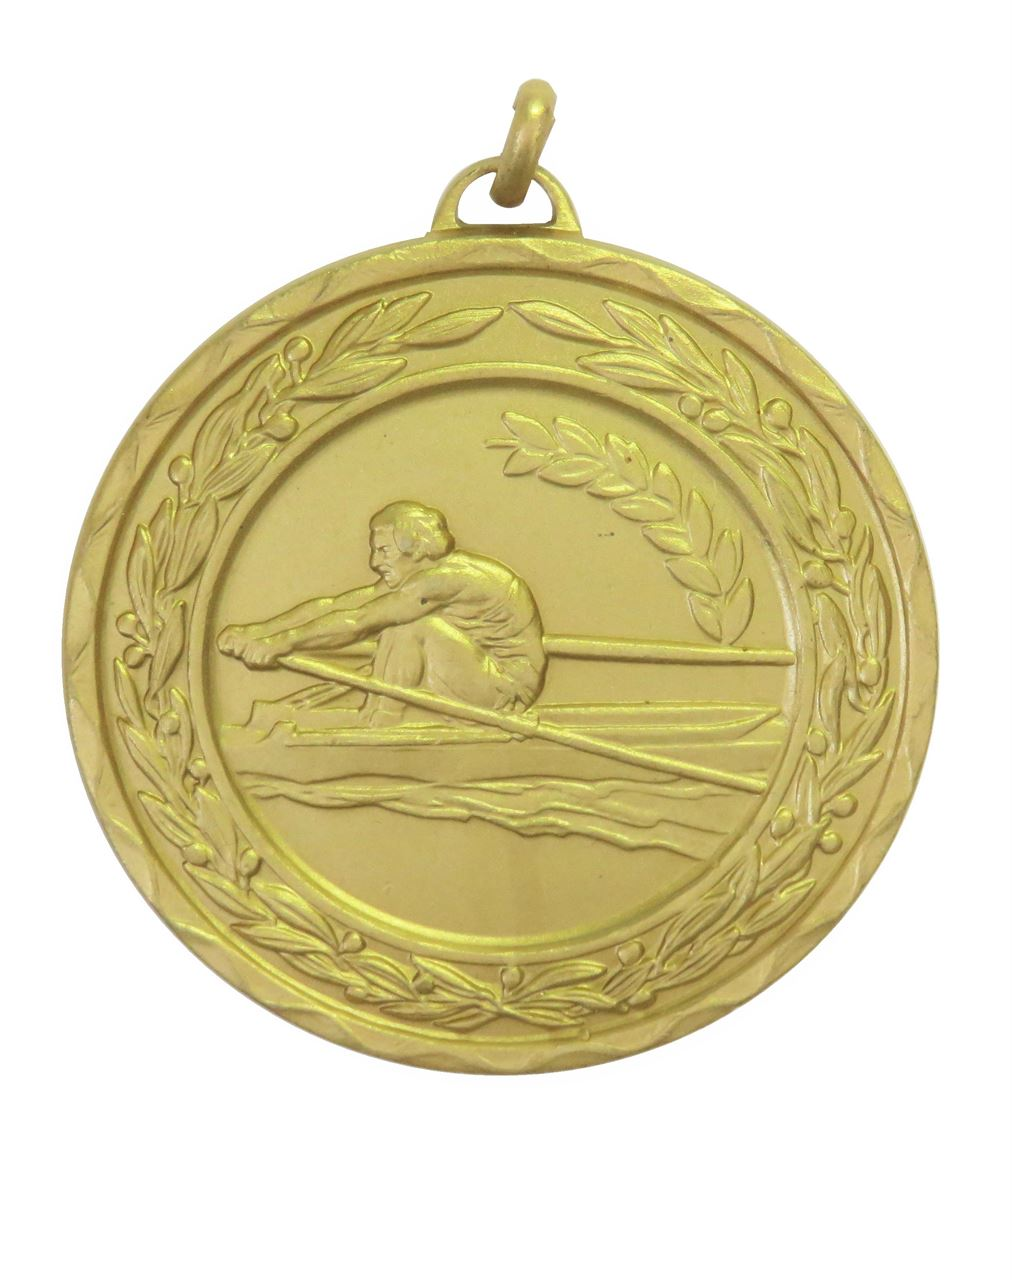 Gold Laurel Economy Rowing Medal (size: 50mm) - 4295RE